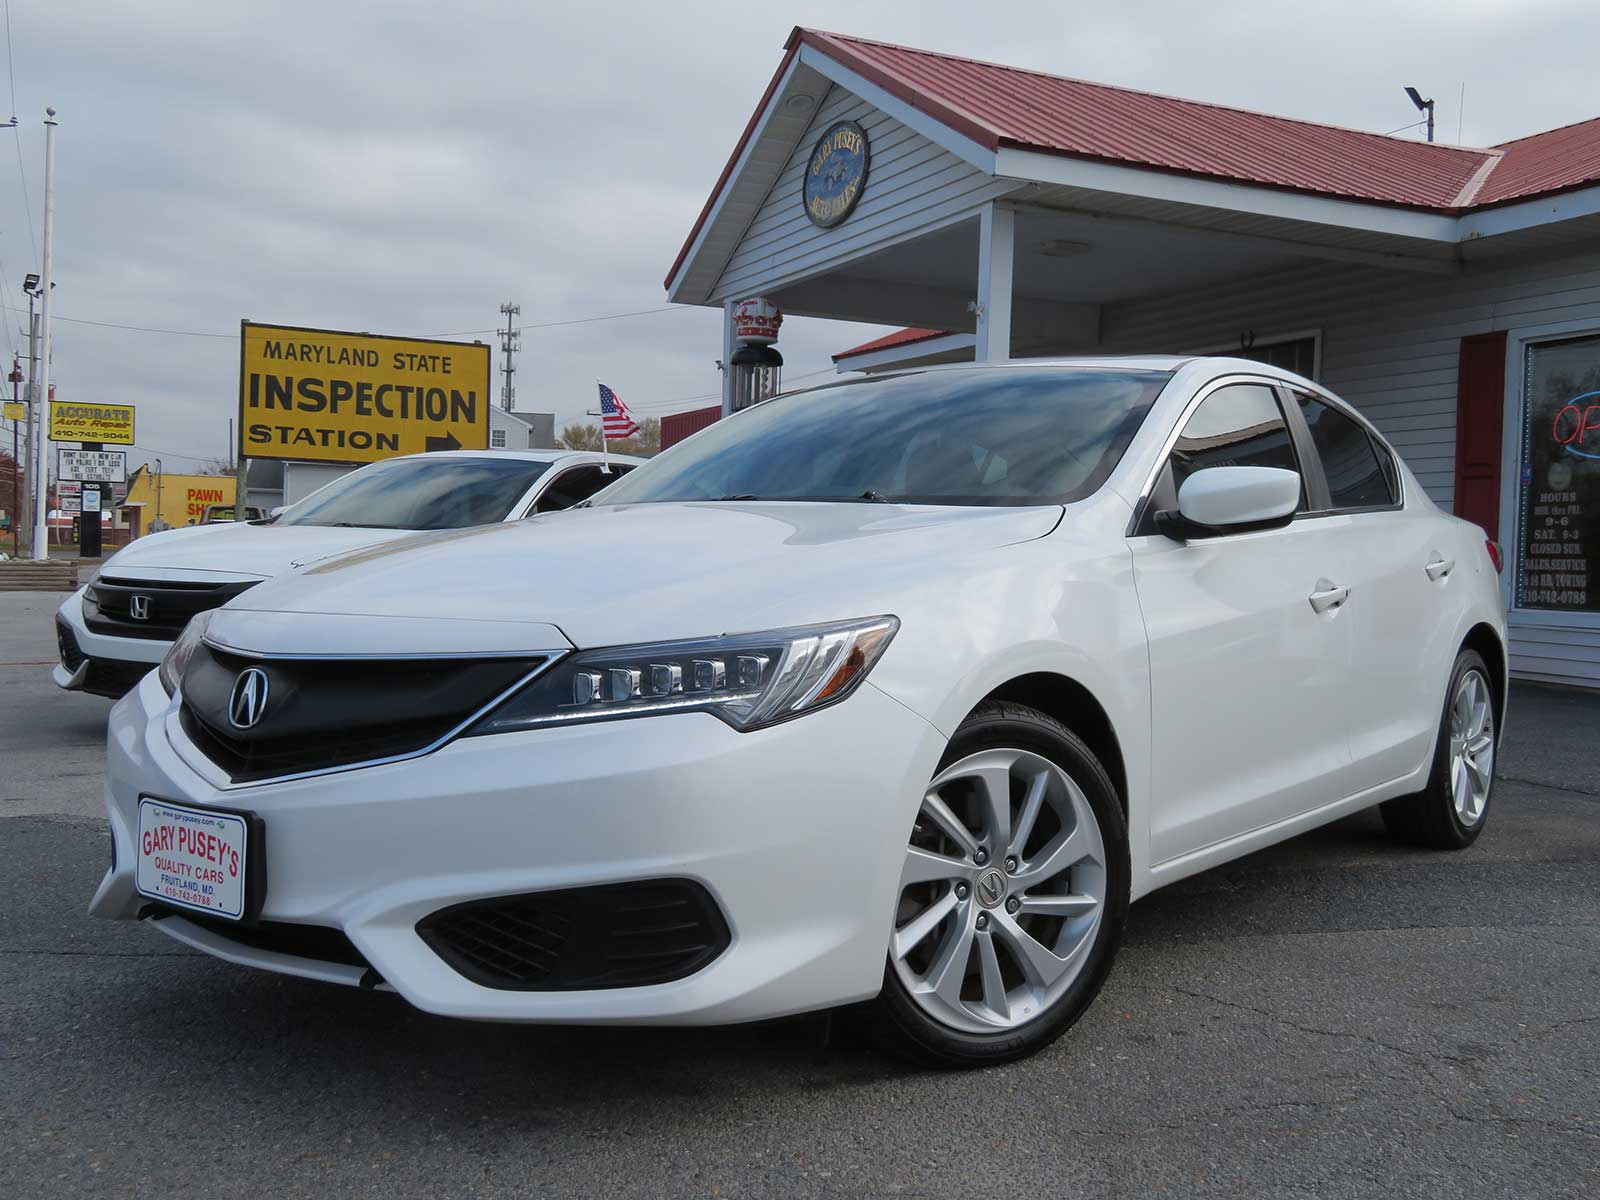 2017 Acura ILX ONLY 22,k miles!